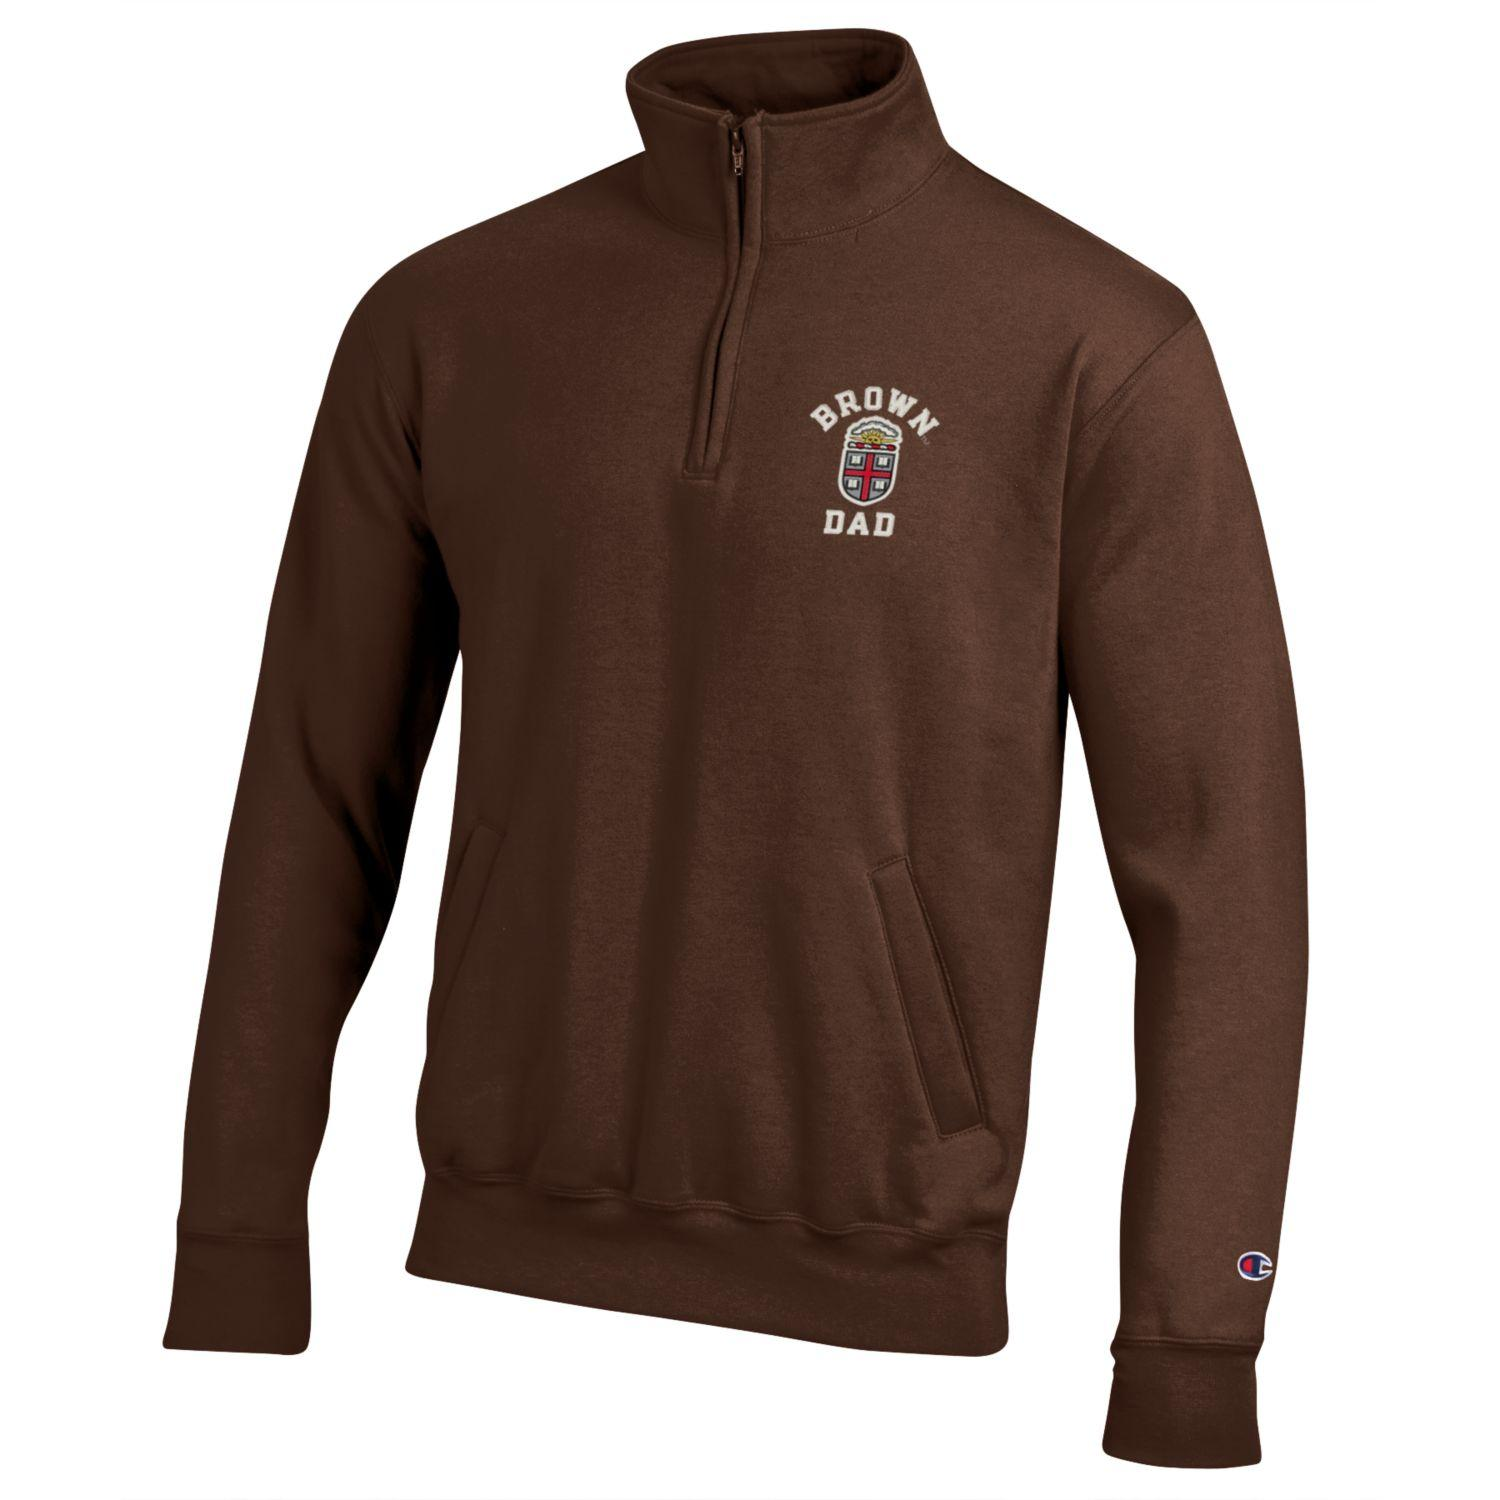 Image For Champion Powerblend Dad 1/4 Zip